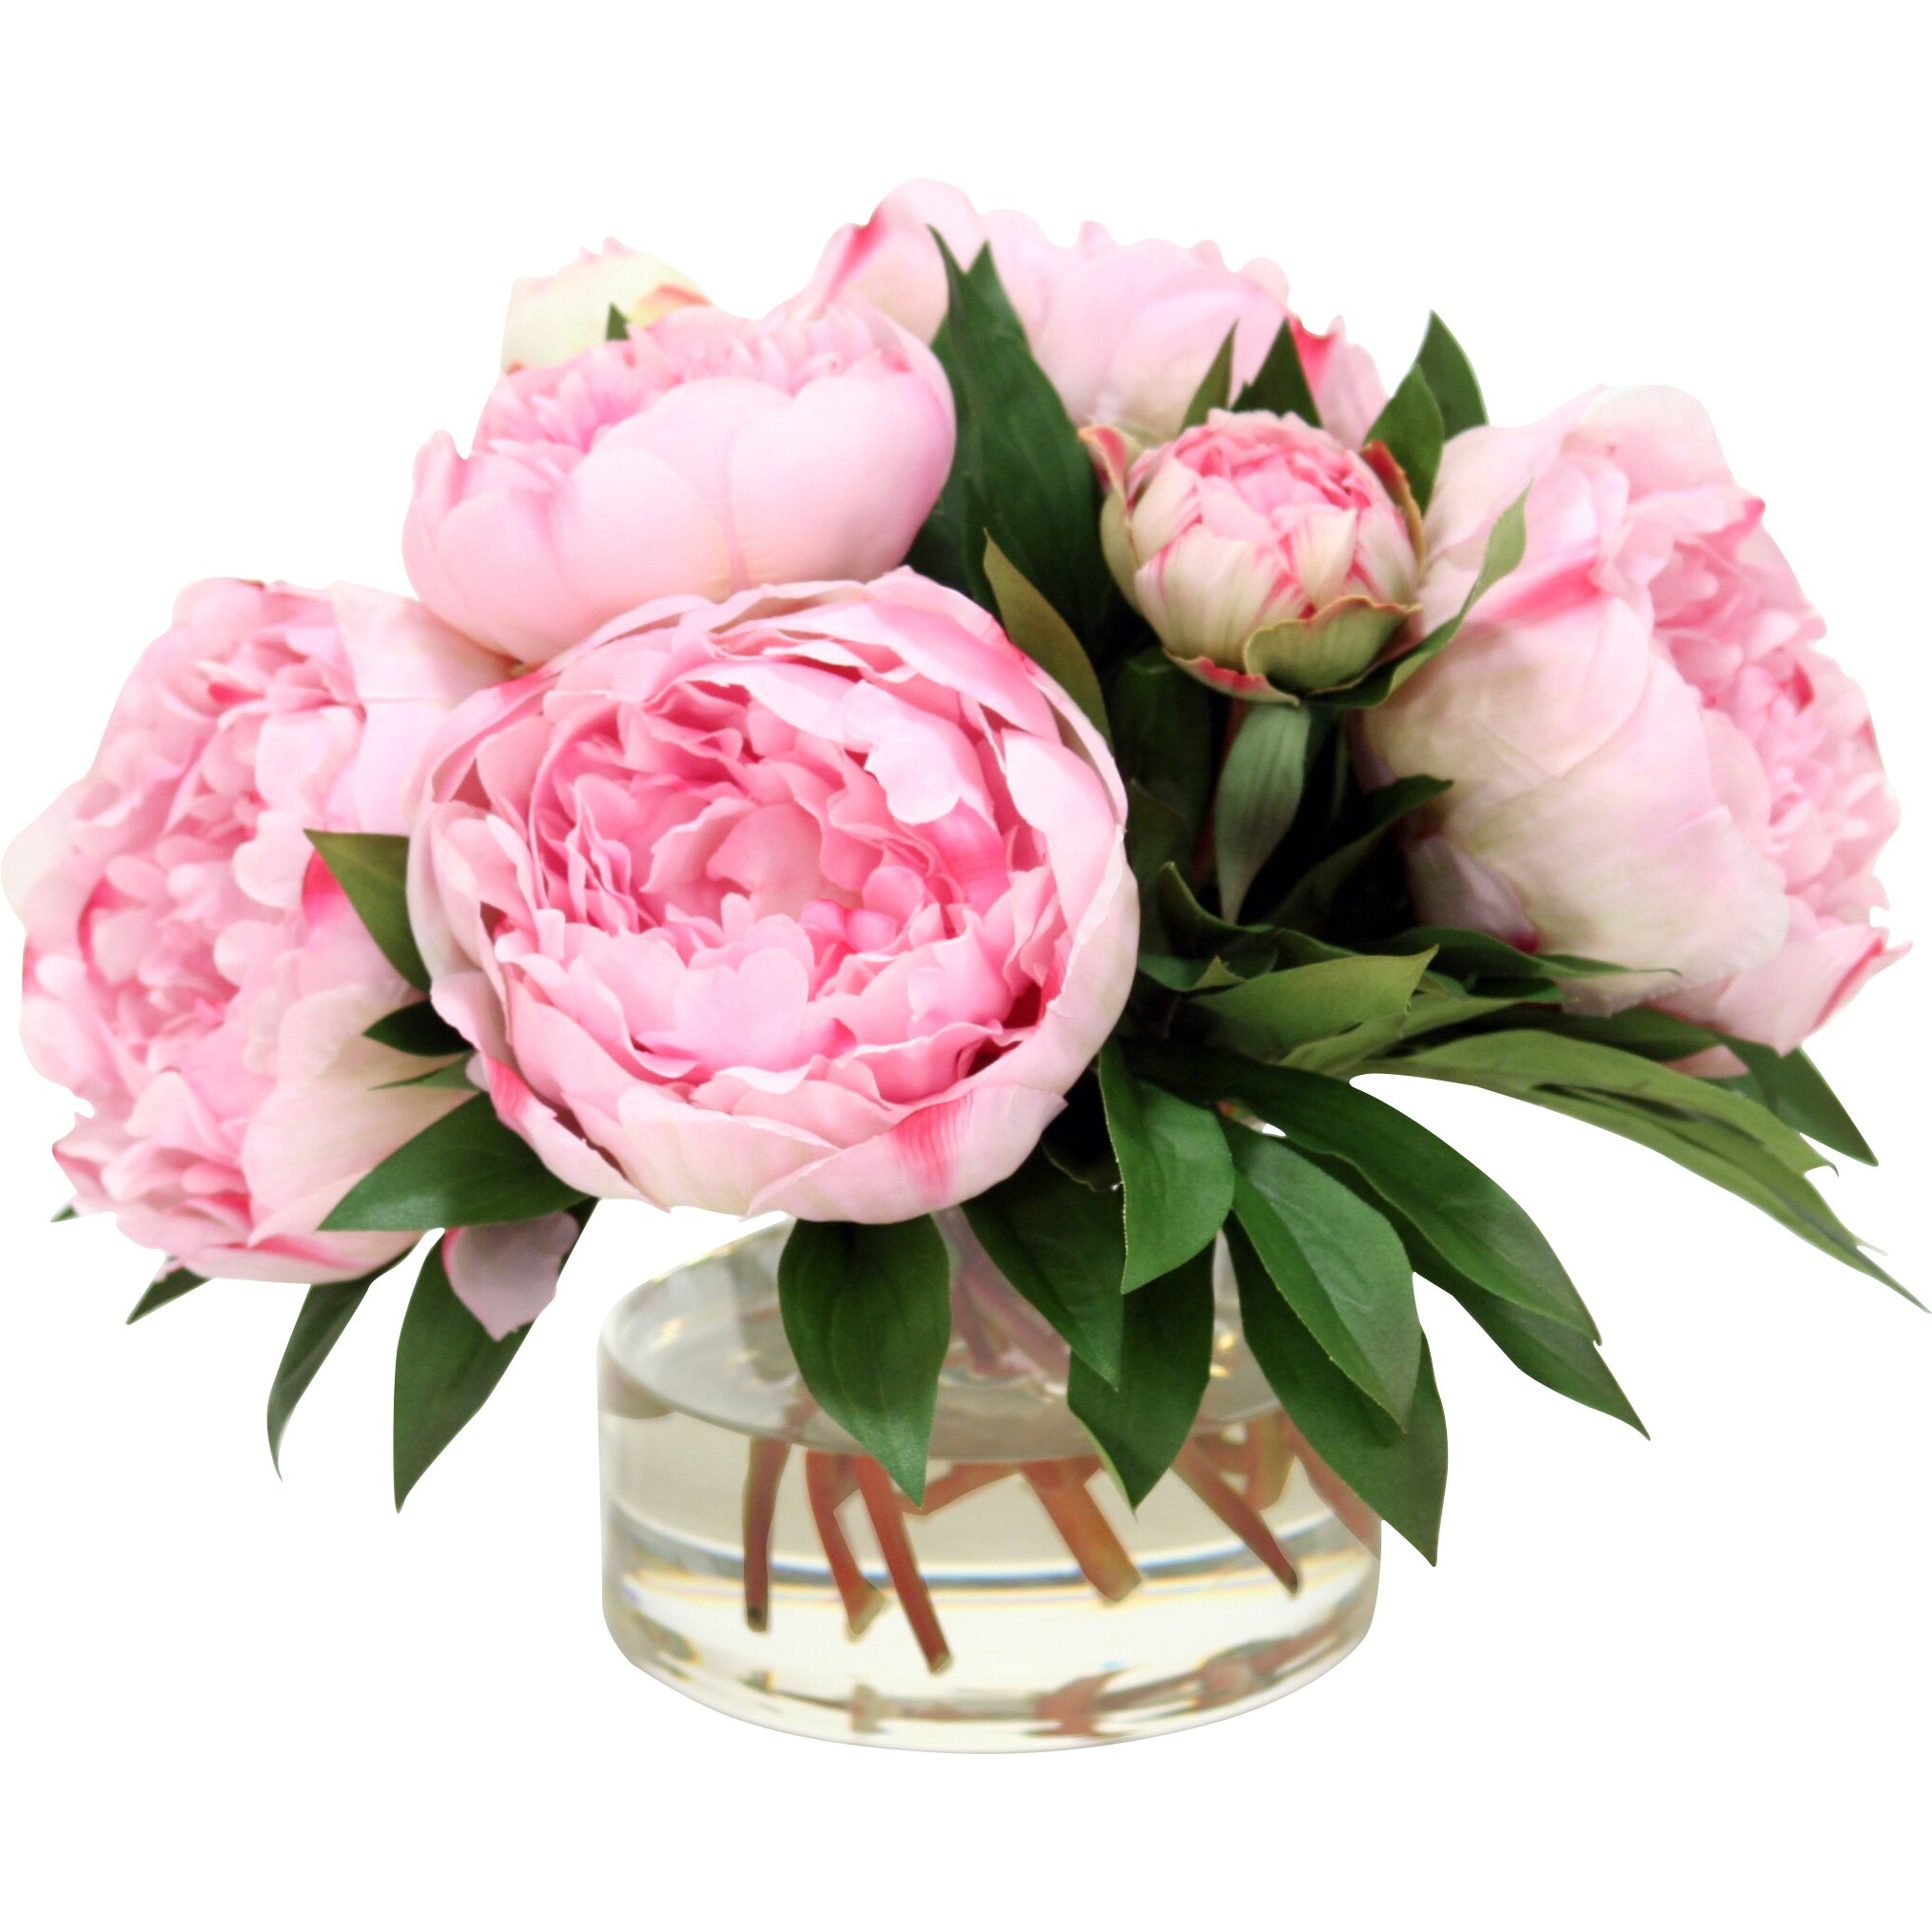 Table Pads Dining Room Table Distinctive Designs Large Peonies And Medium With Buds In